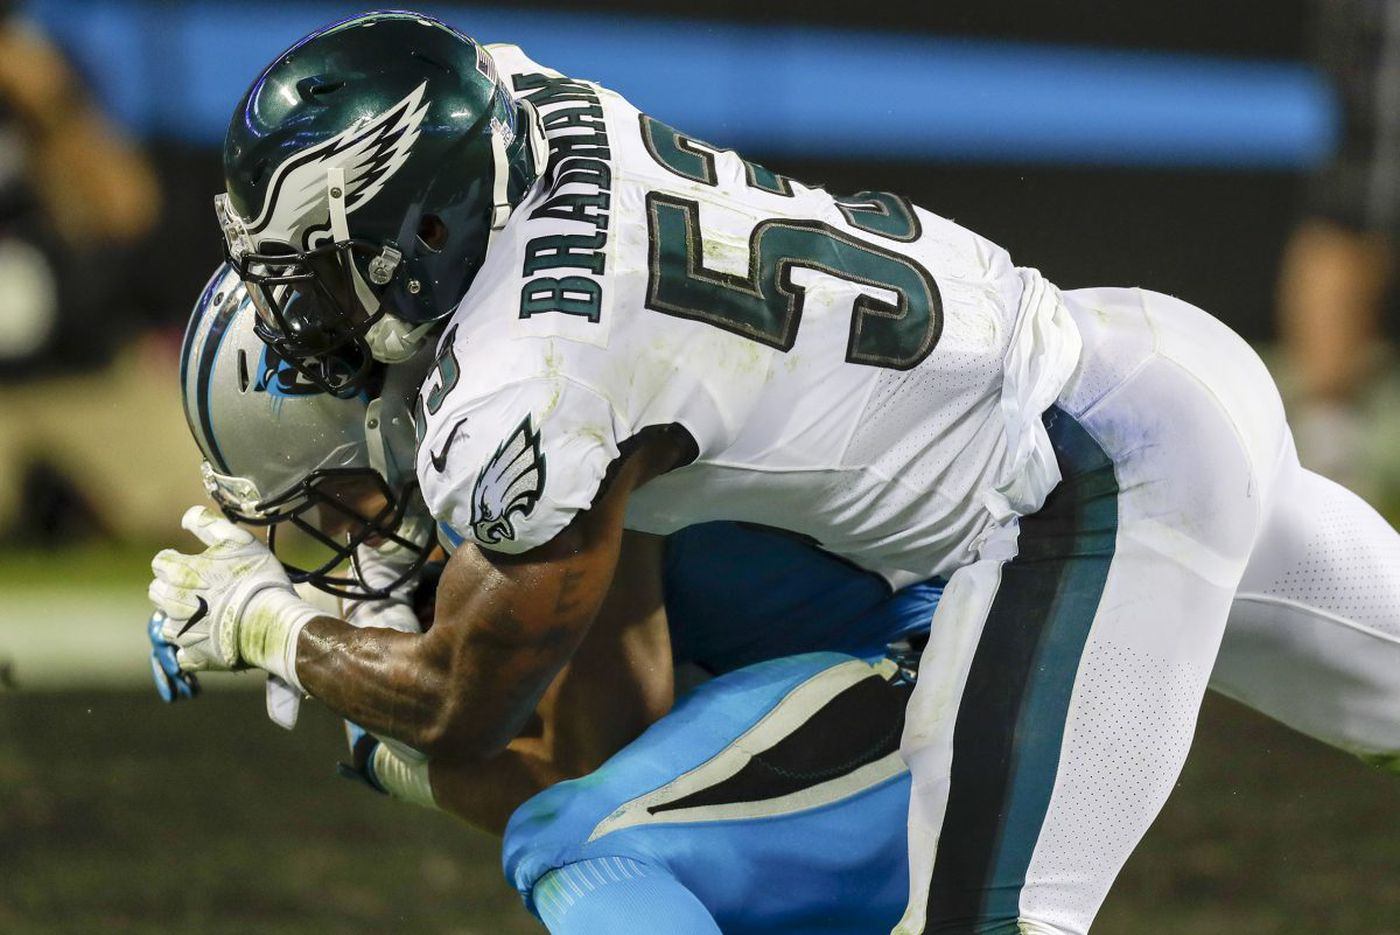 Eagles' Nigel Bradham finally getting the recognition he believes is long deserved